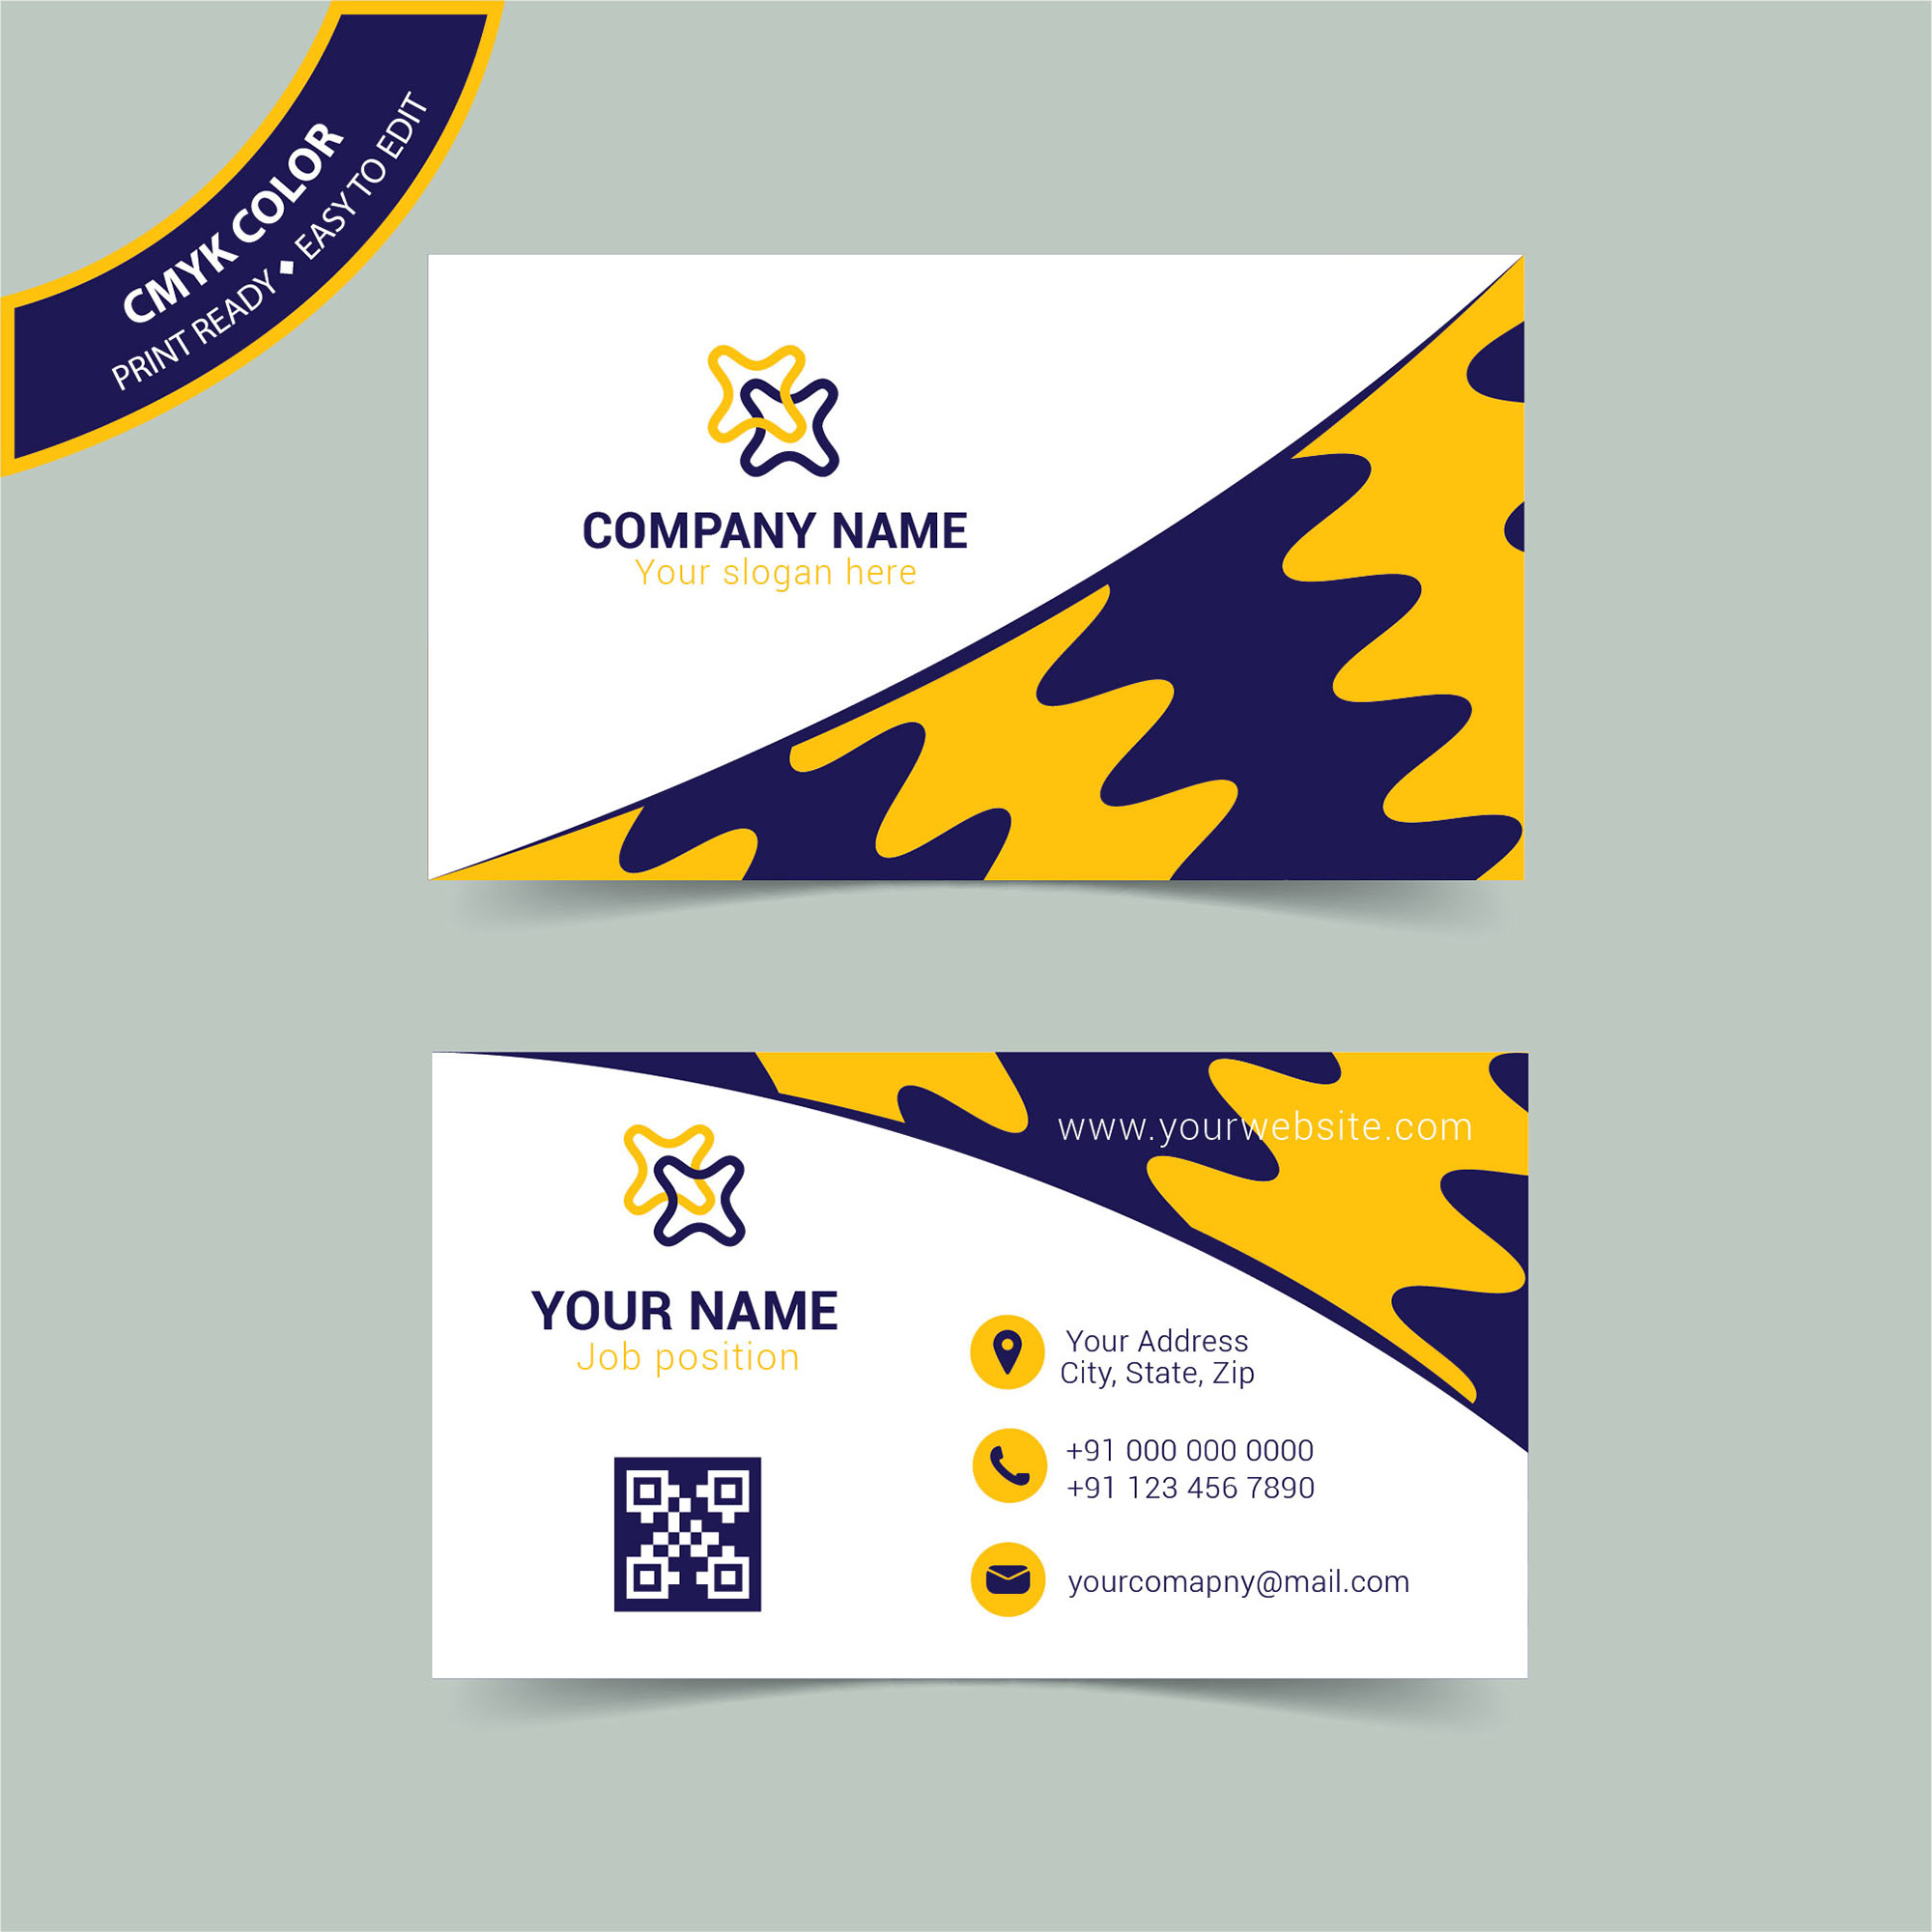 Business card design templates free download wisxi business card business cards business card design business card template design templates reheart Gallery